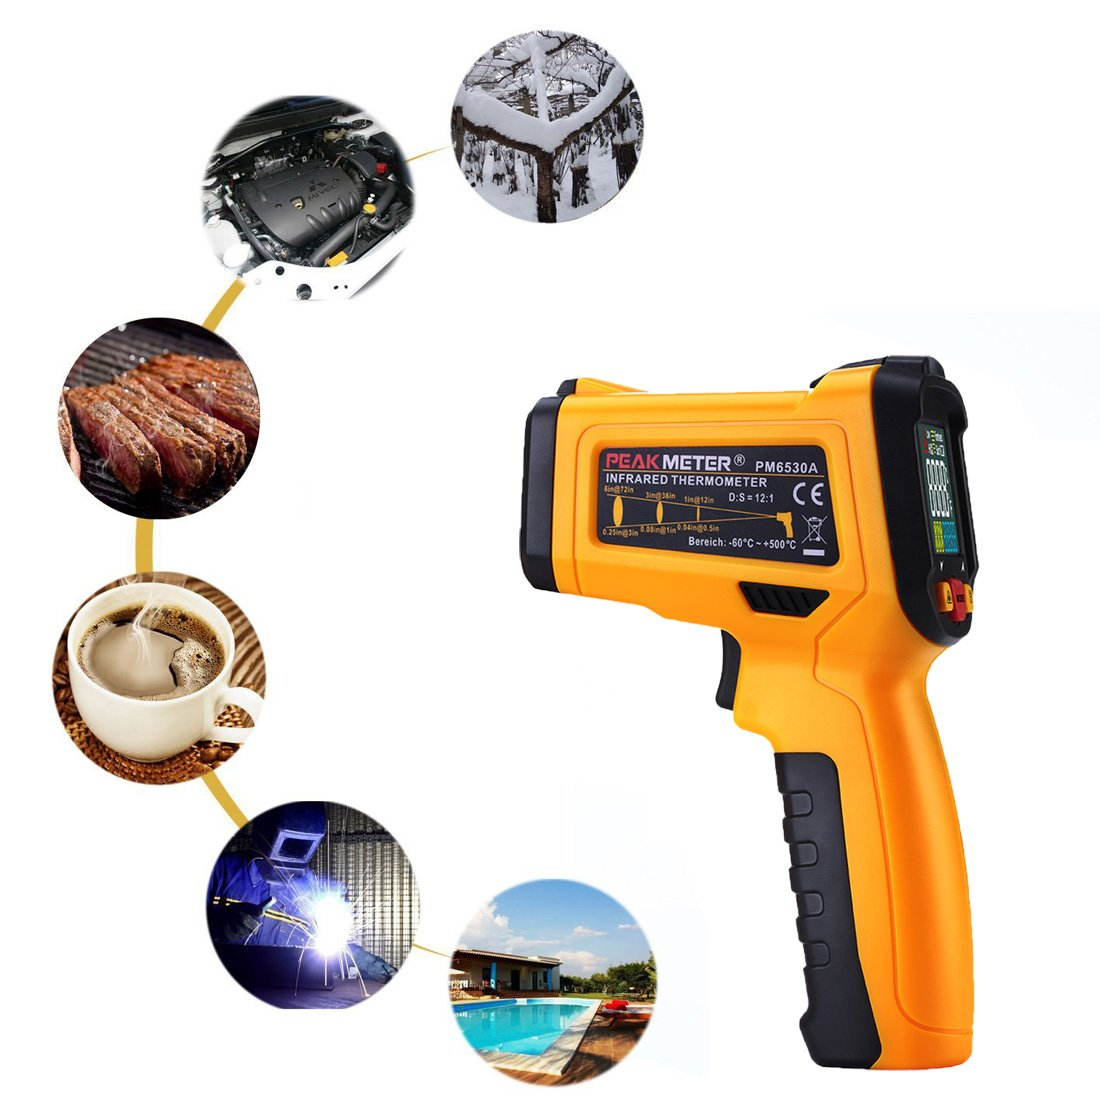 Digital Infrared thermometer Peakmeter PM6530A Laser IR Temperature Gun LCD for Kitchen Cooking Automotive with Temperature Bridge Alarm Function Display -58°F~572°F(-50°C~300°C) by uvcetech (Image #2)